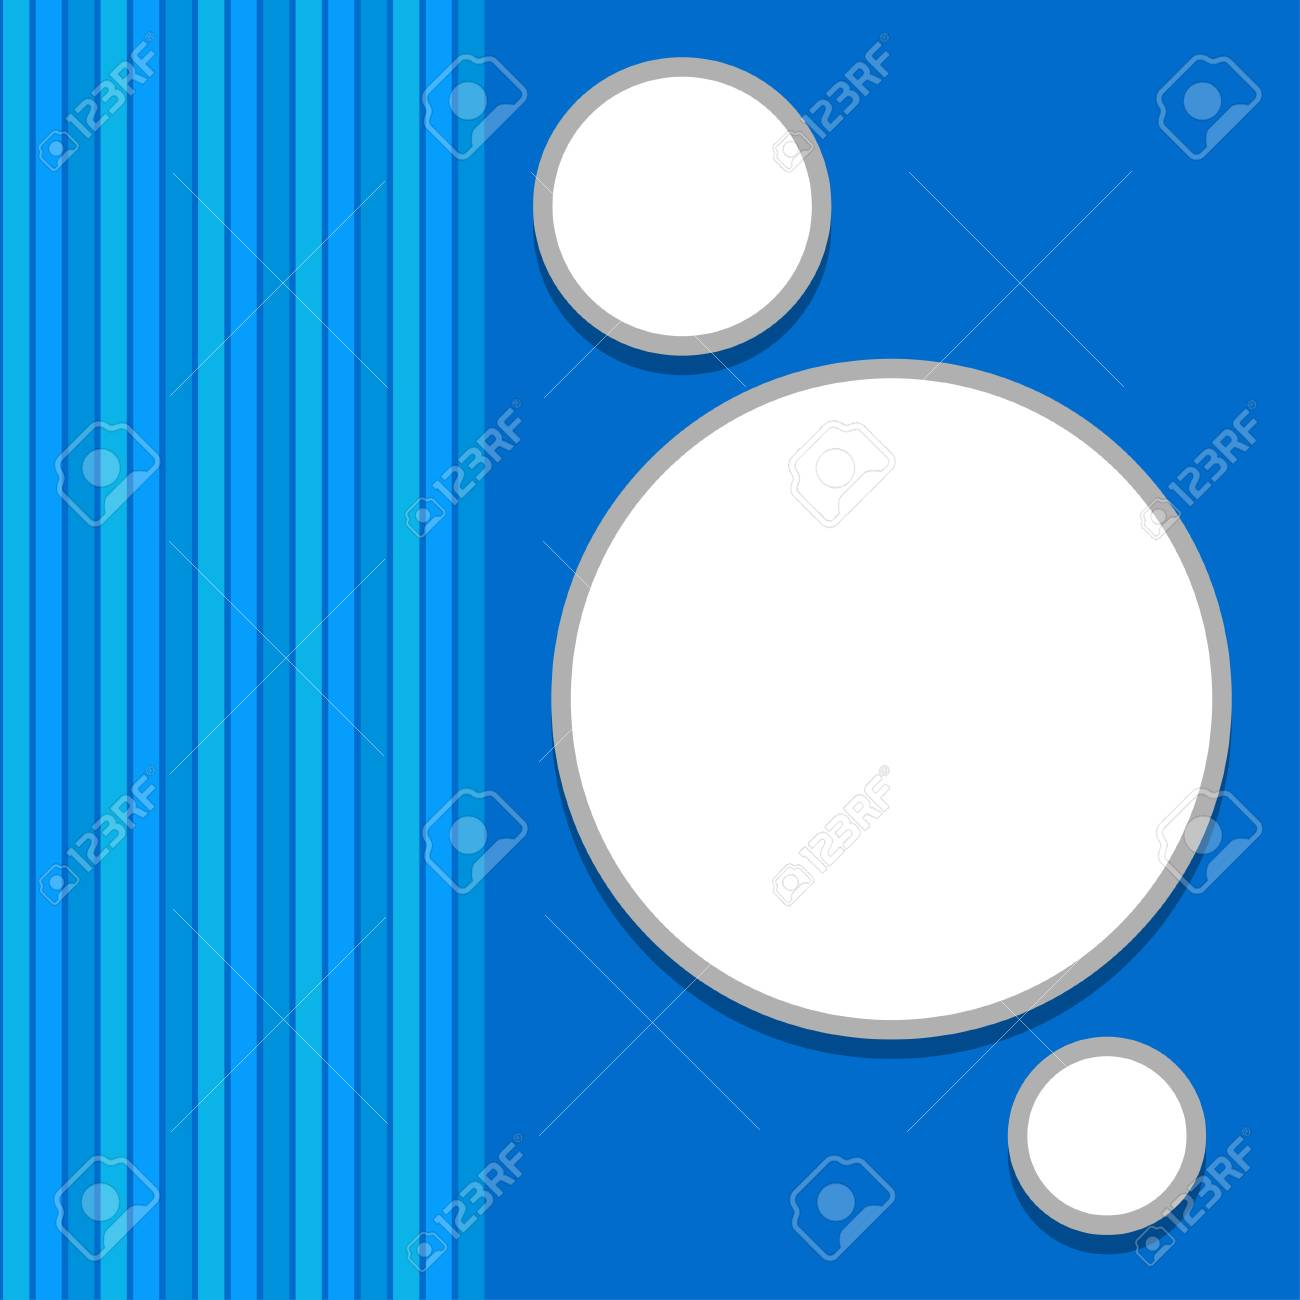 Abstract background with blue waves and white bubbles Stock Vector - 18257023